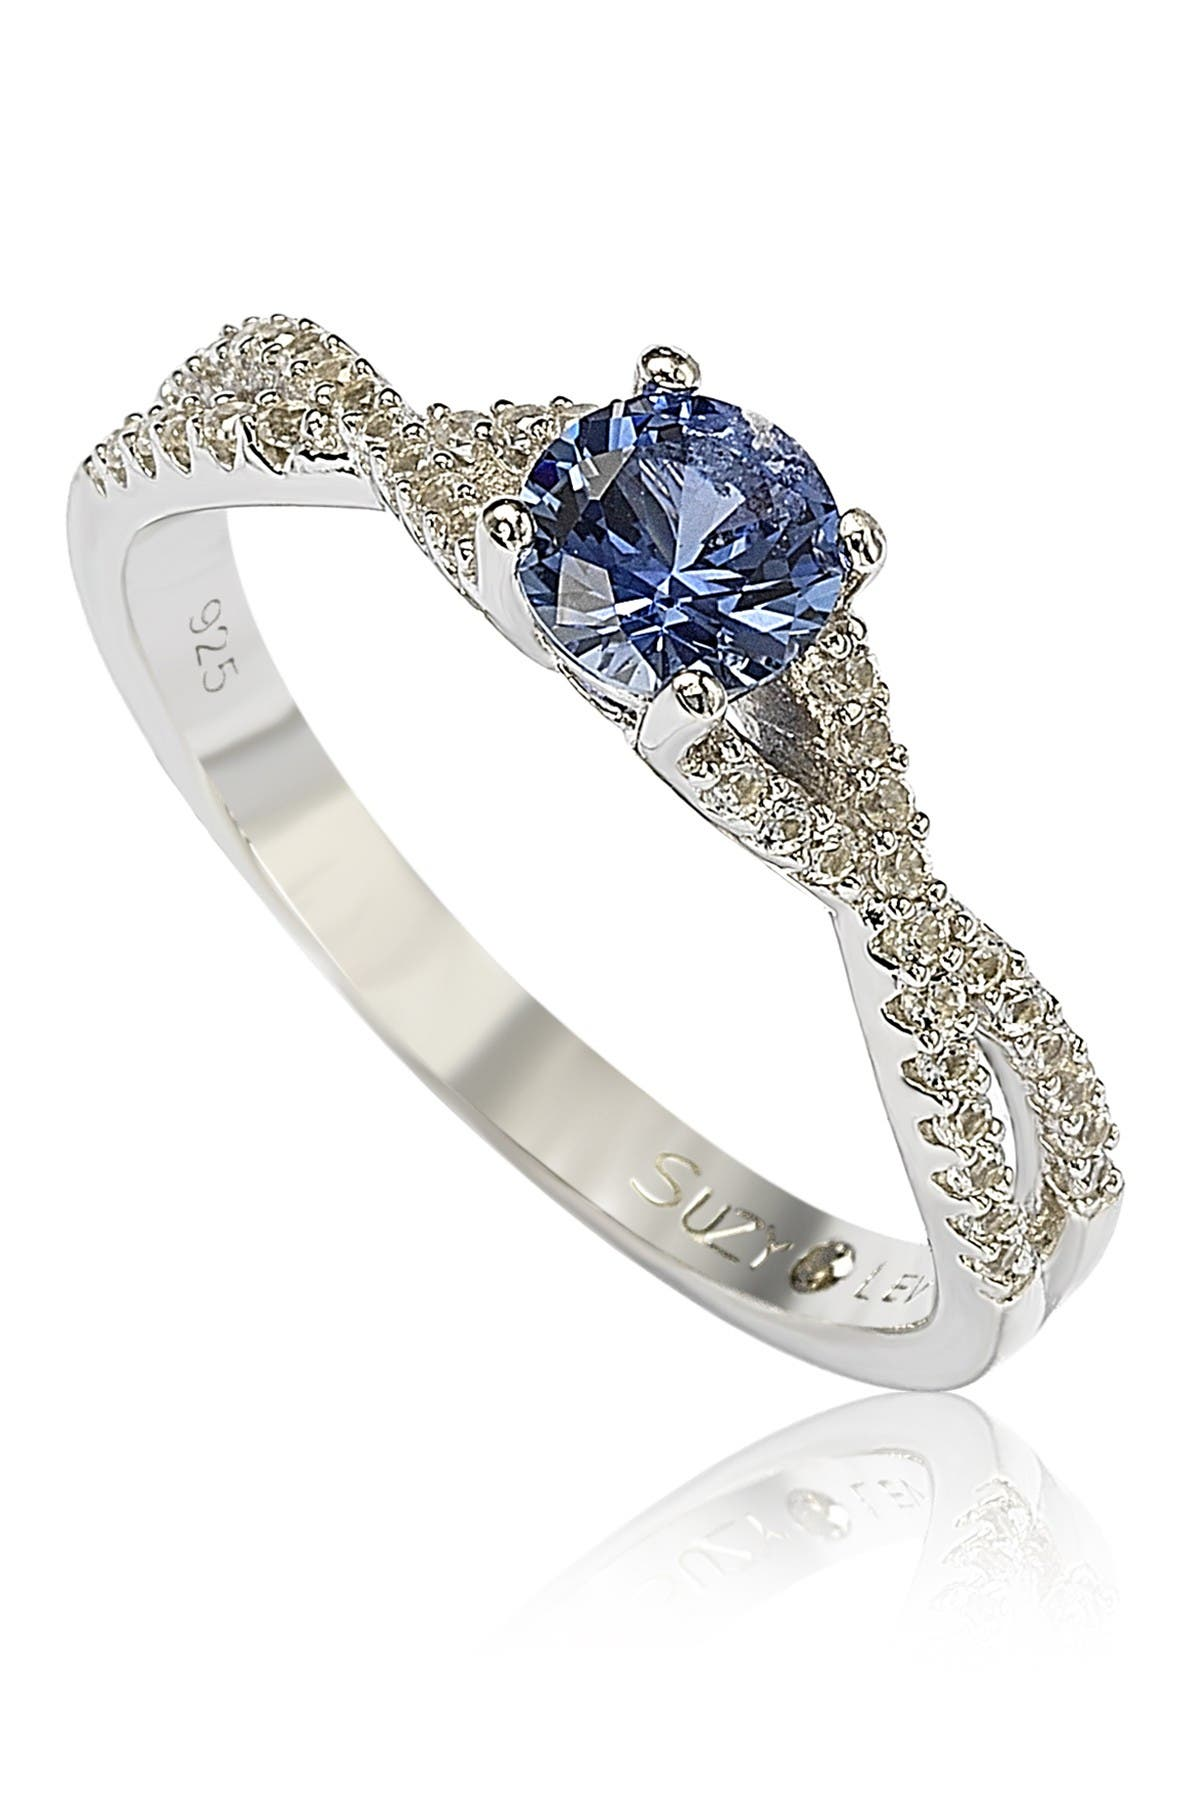 Image of Suzy Levian Sterling Silver Sapphire Ring